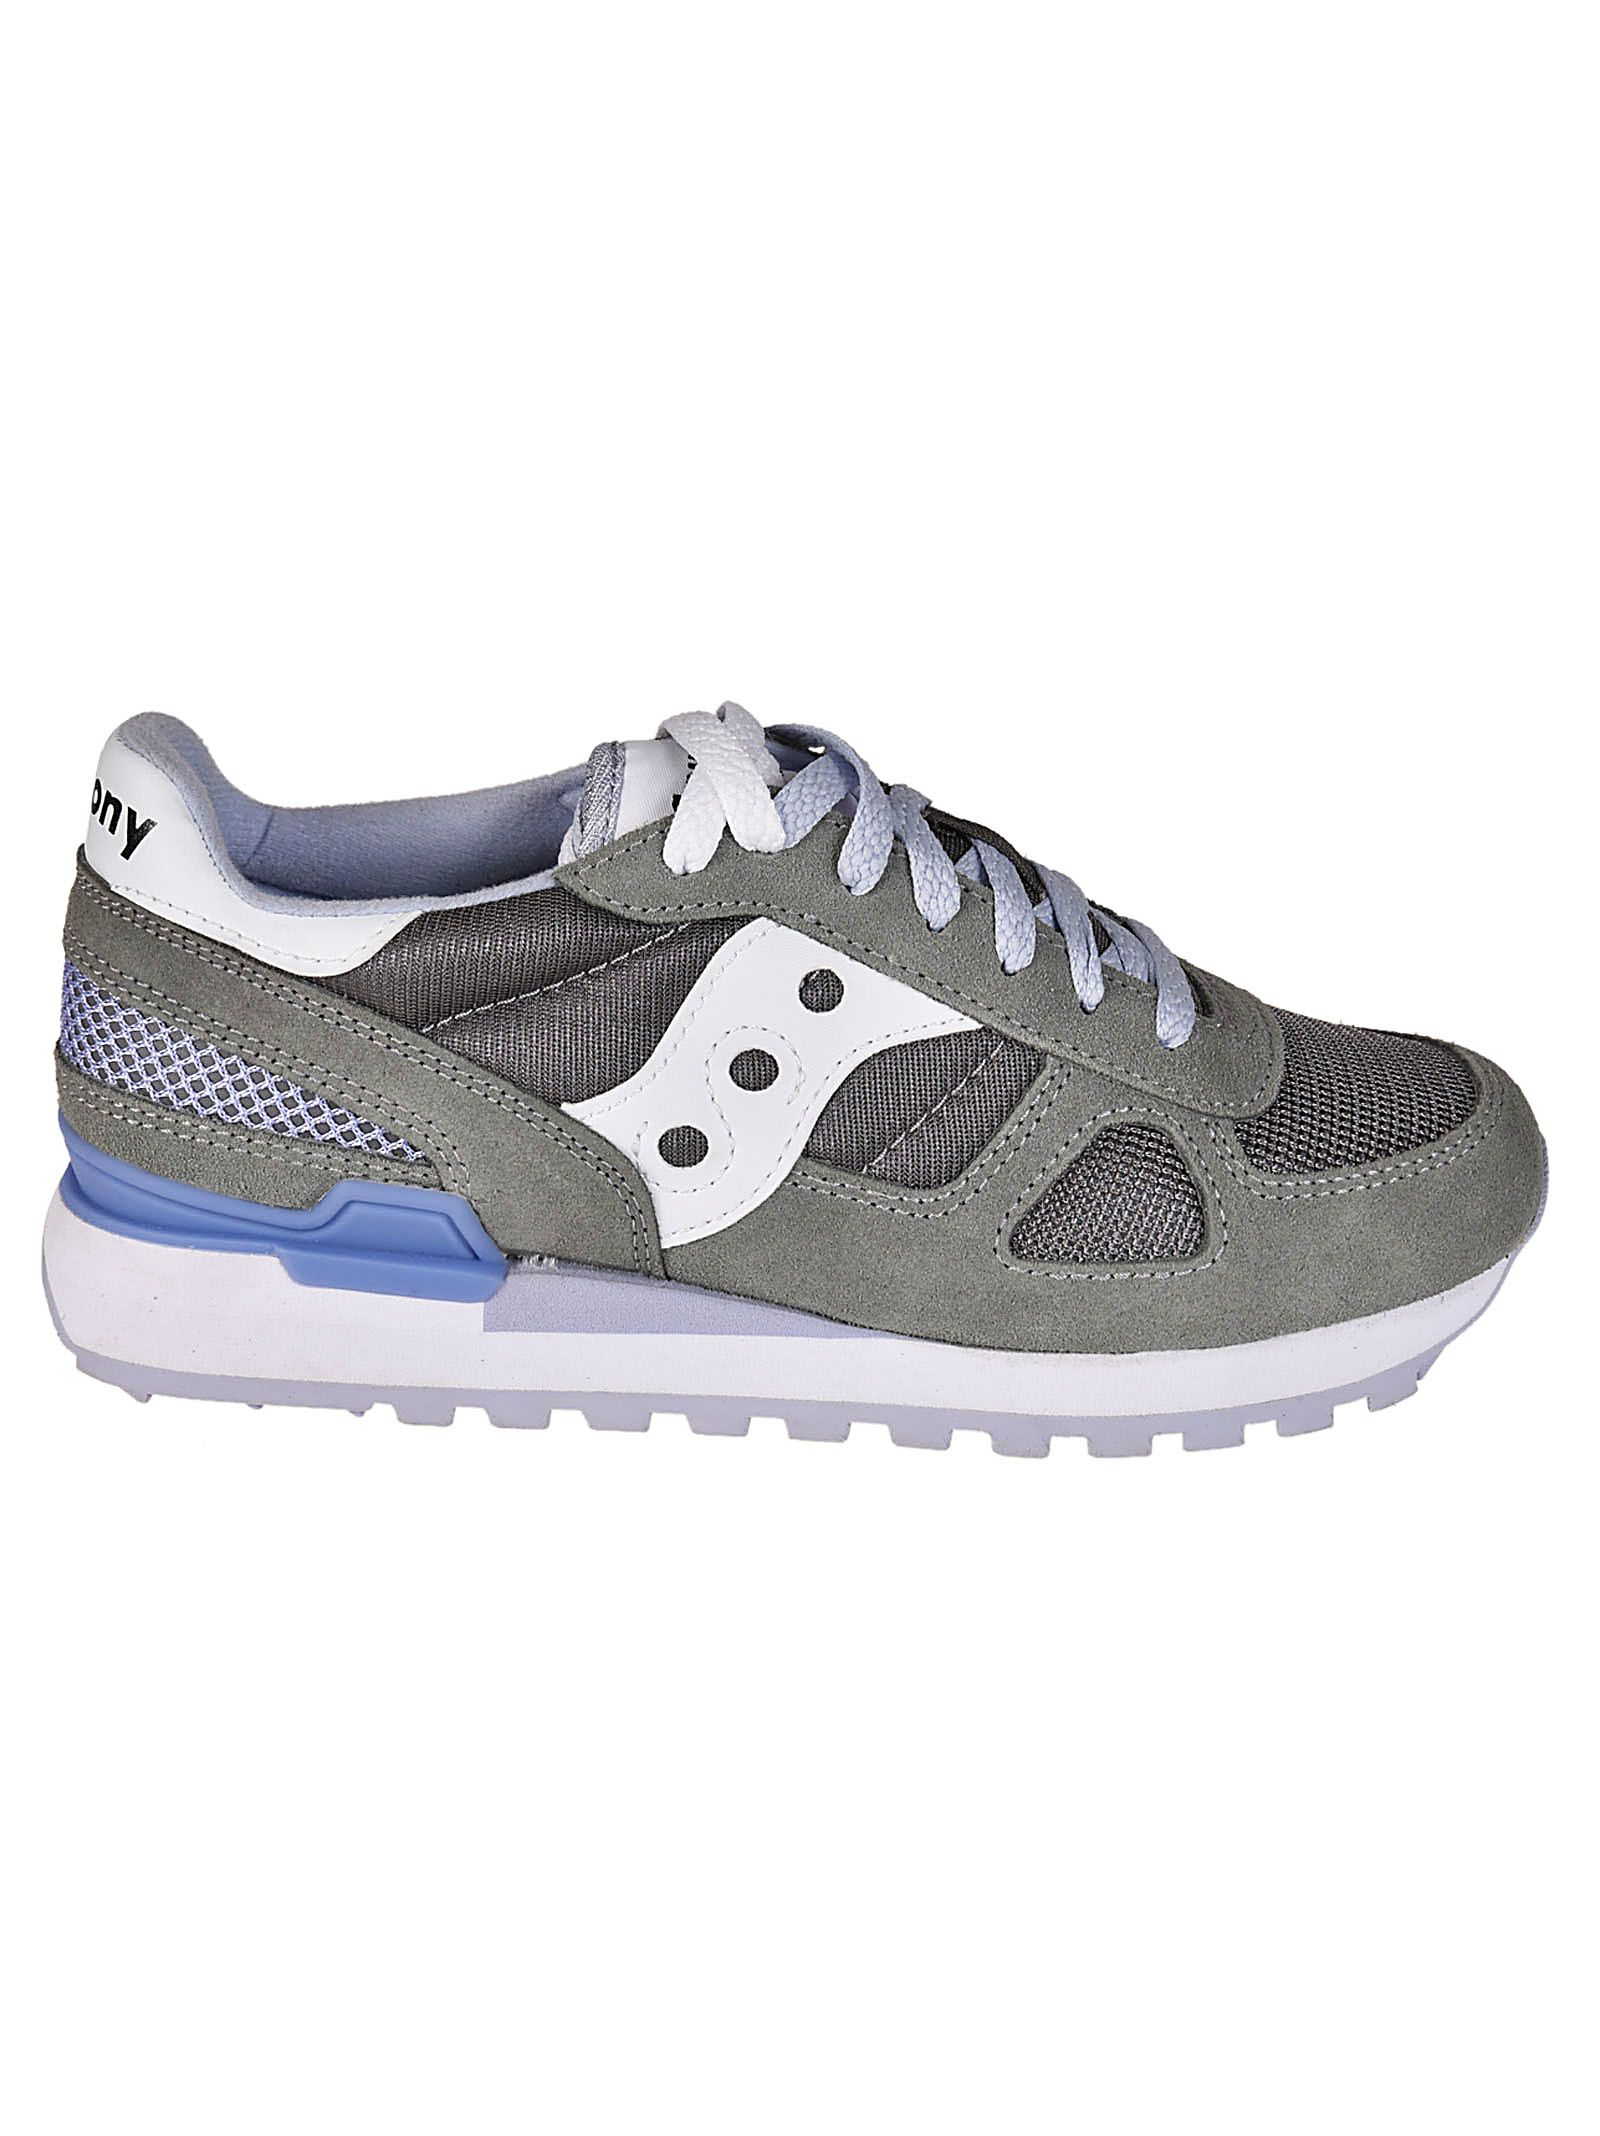 hot sale online 0e424 9b64e Saucony Saucony Jazz Original Sneakers - Basic - 10546723   italist saucony  jazz original